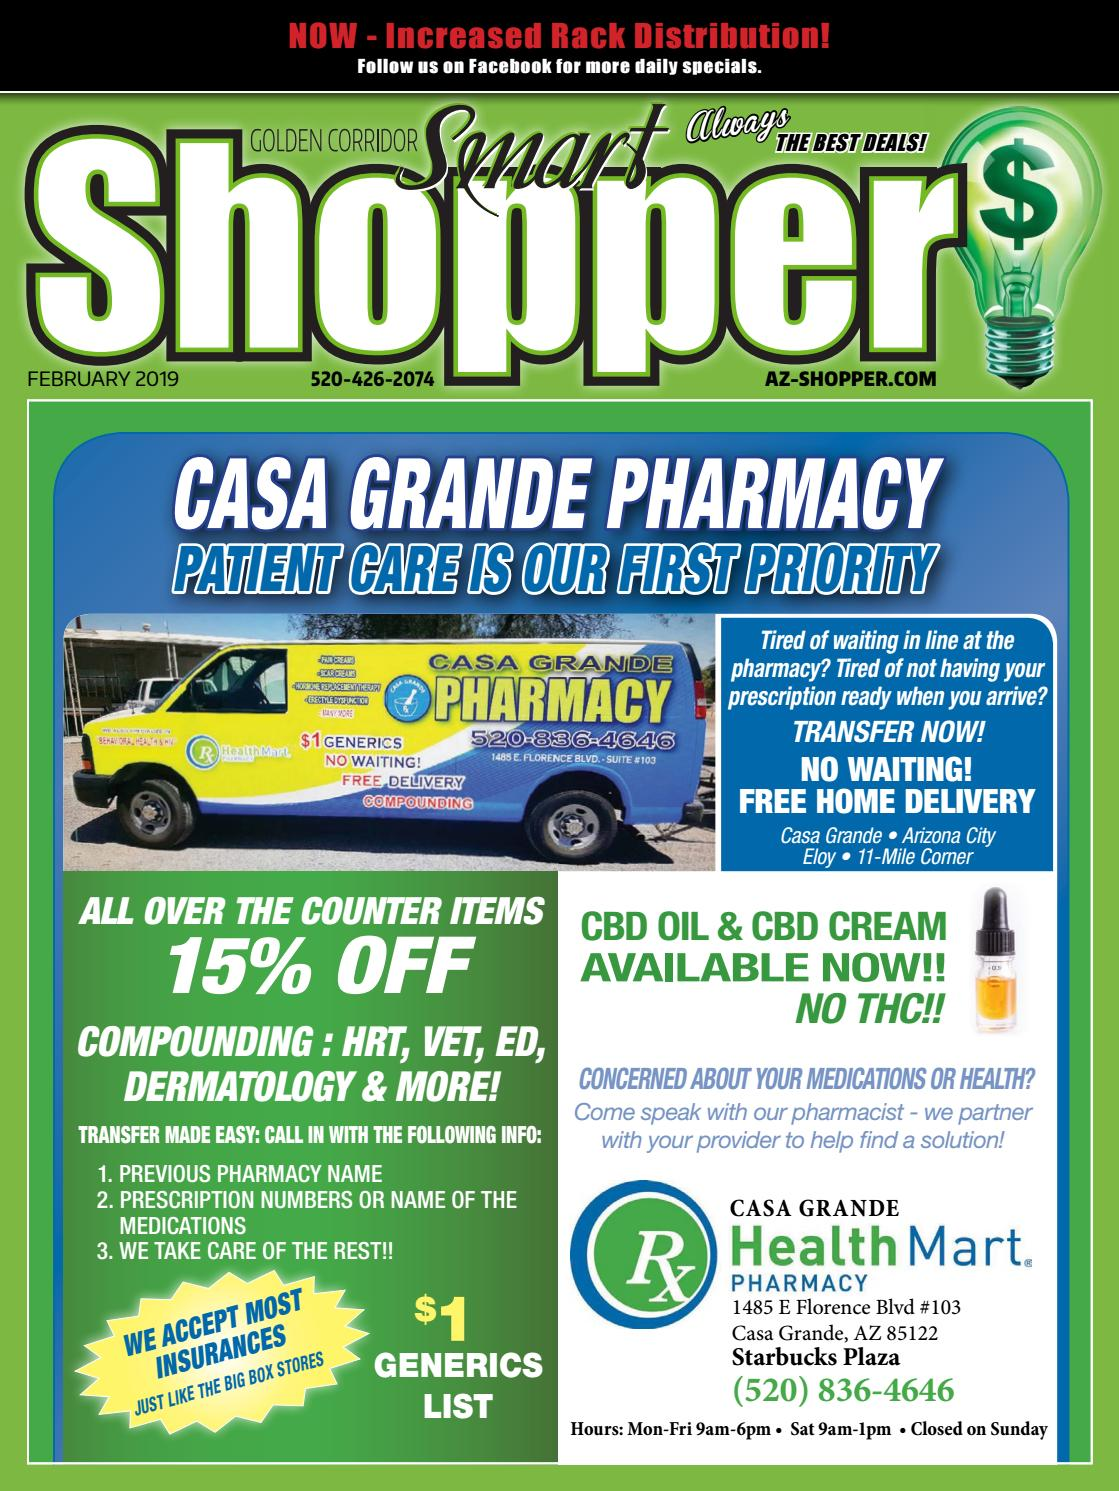 Golden Corridor Smart Shopper by ROX Media Group - issuu